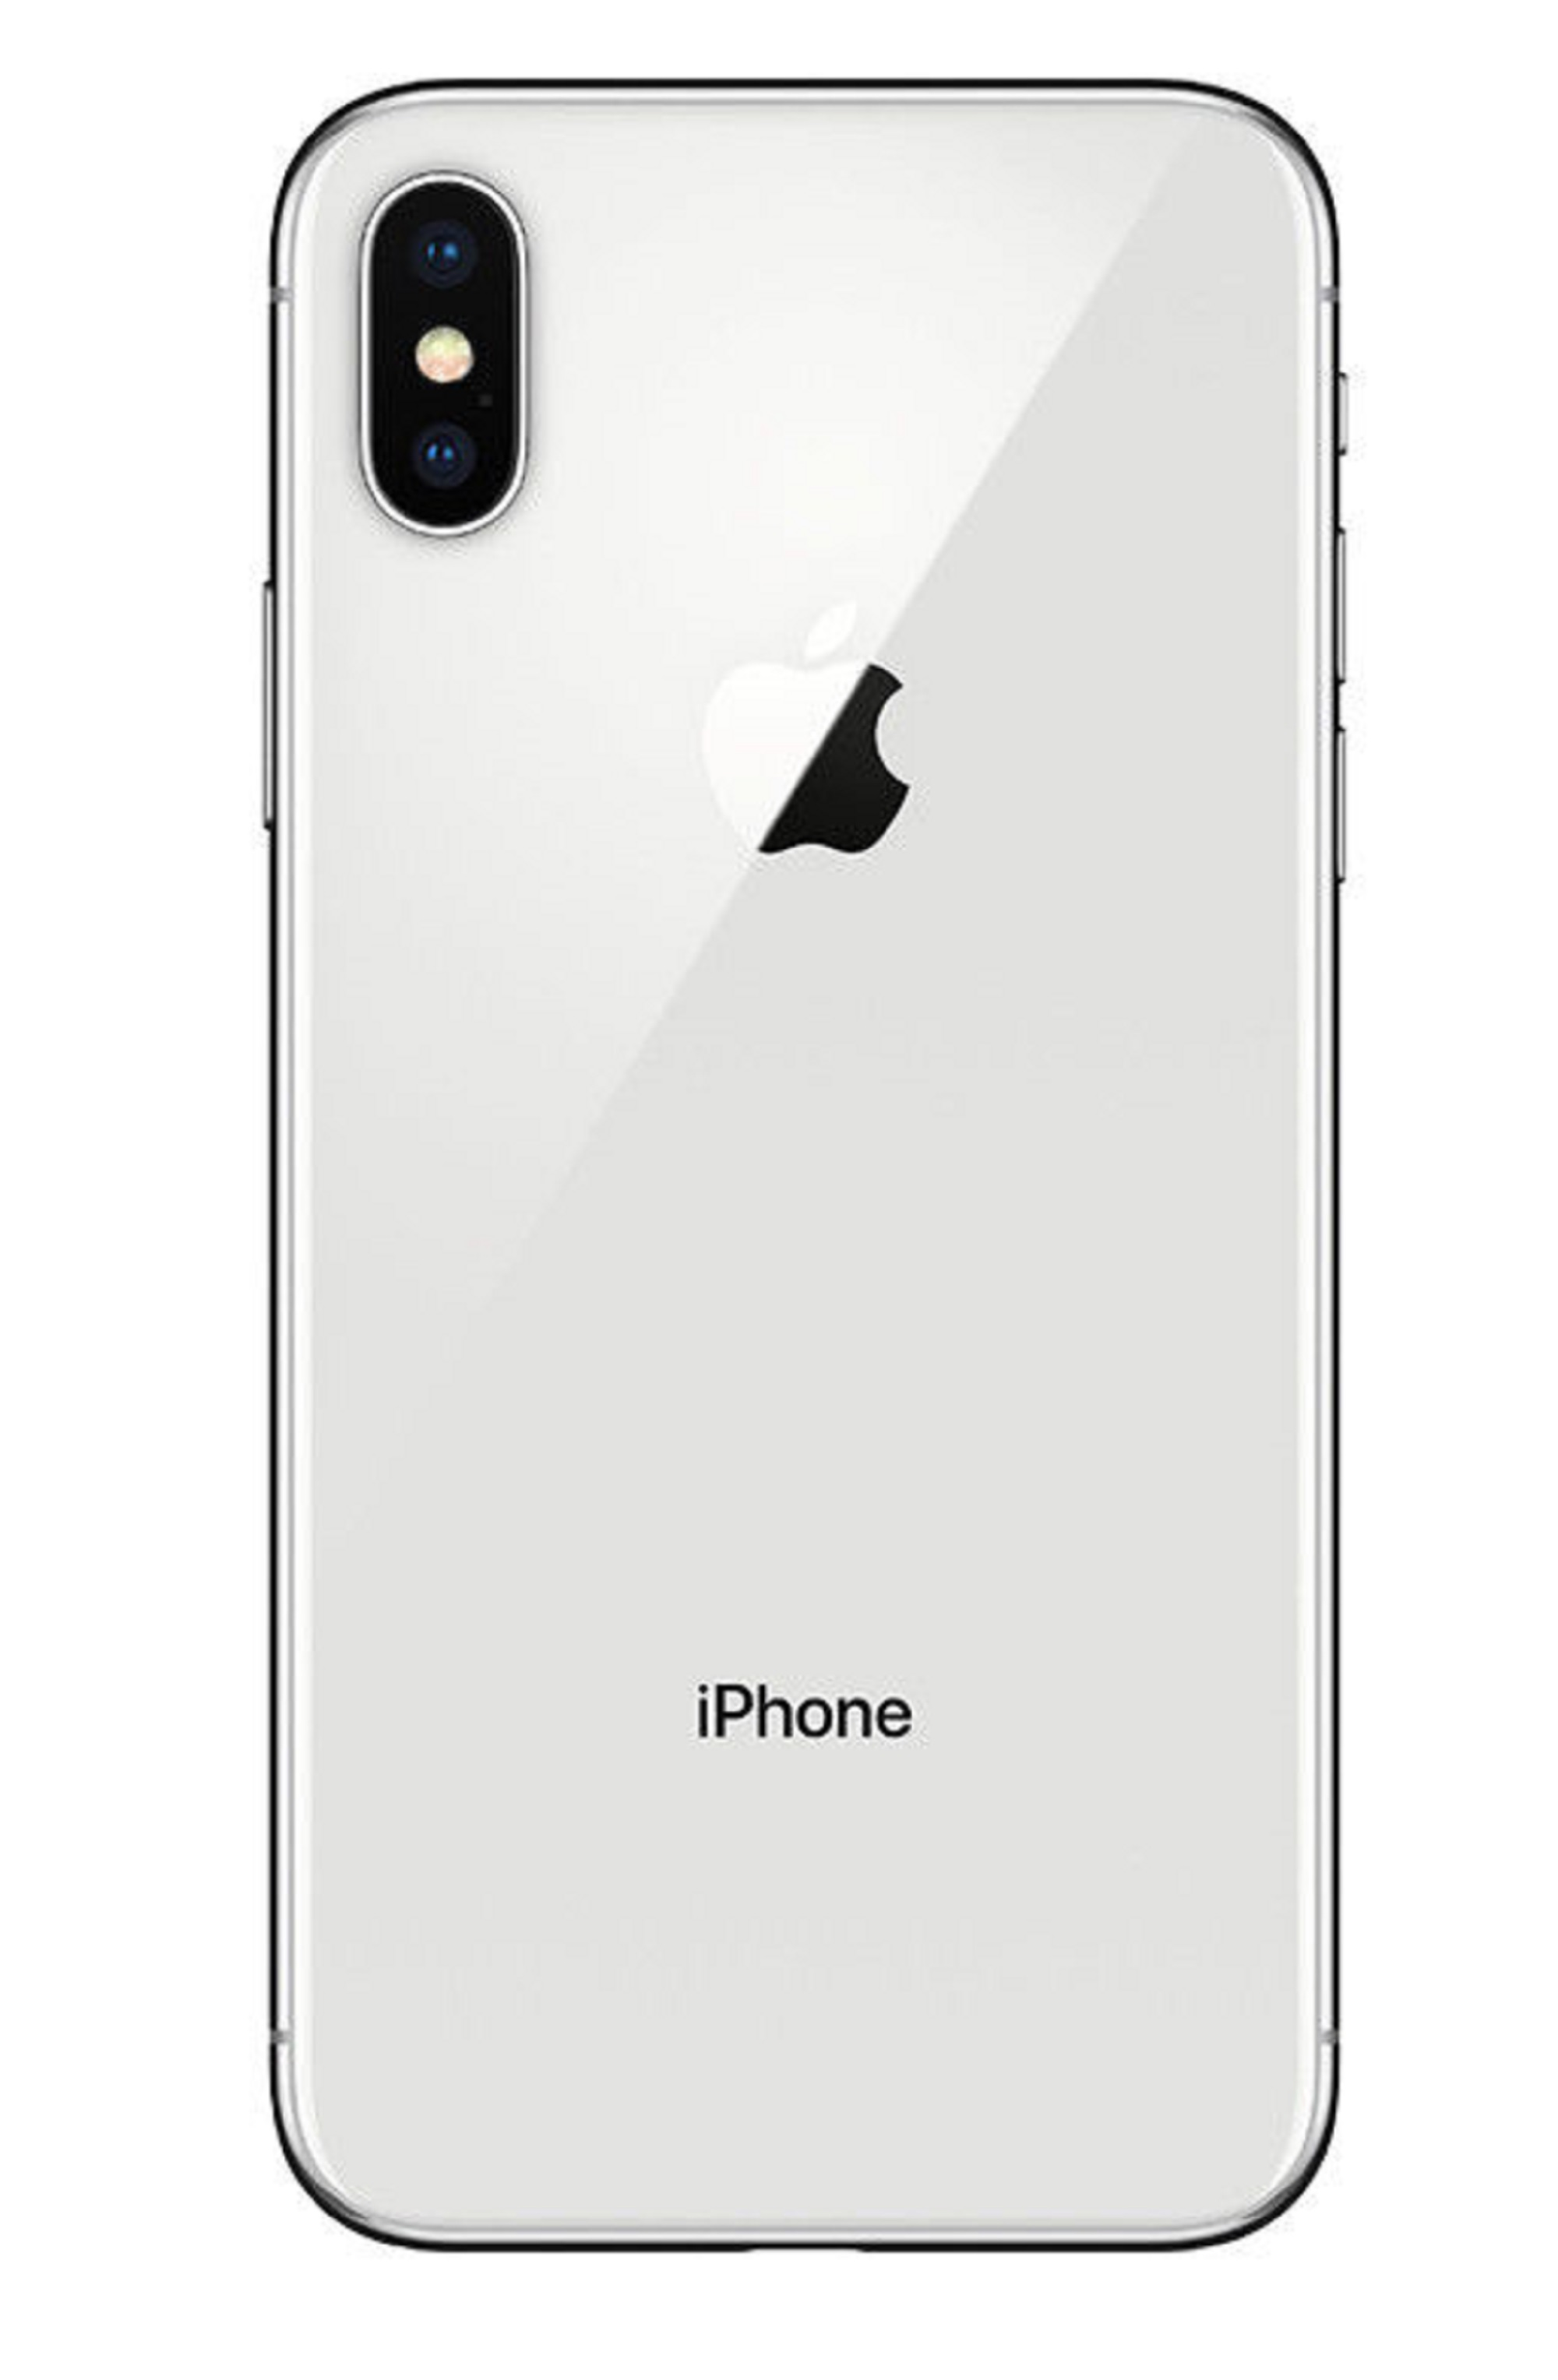 thumbnail 4 - Apple iPhone X 64GB Factory Unlocked Smartphone